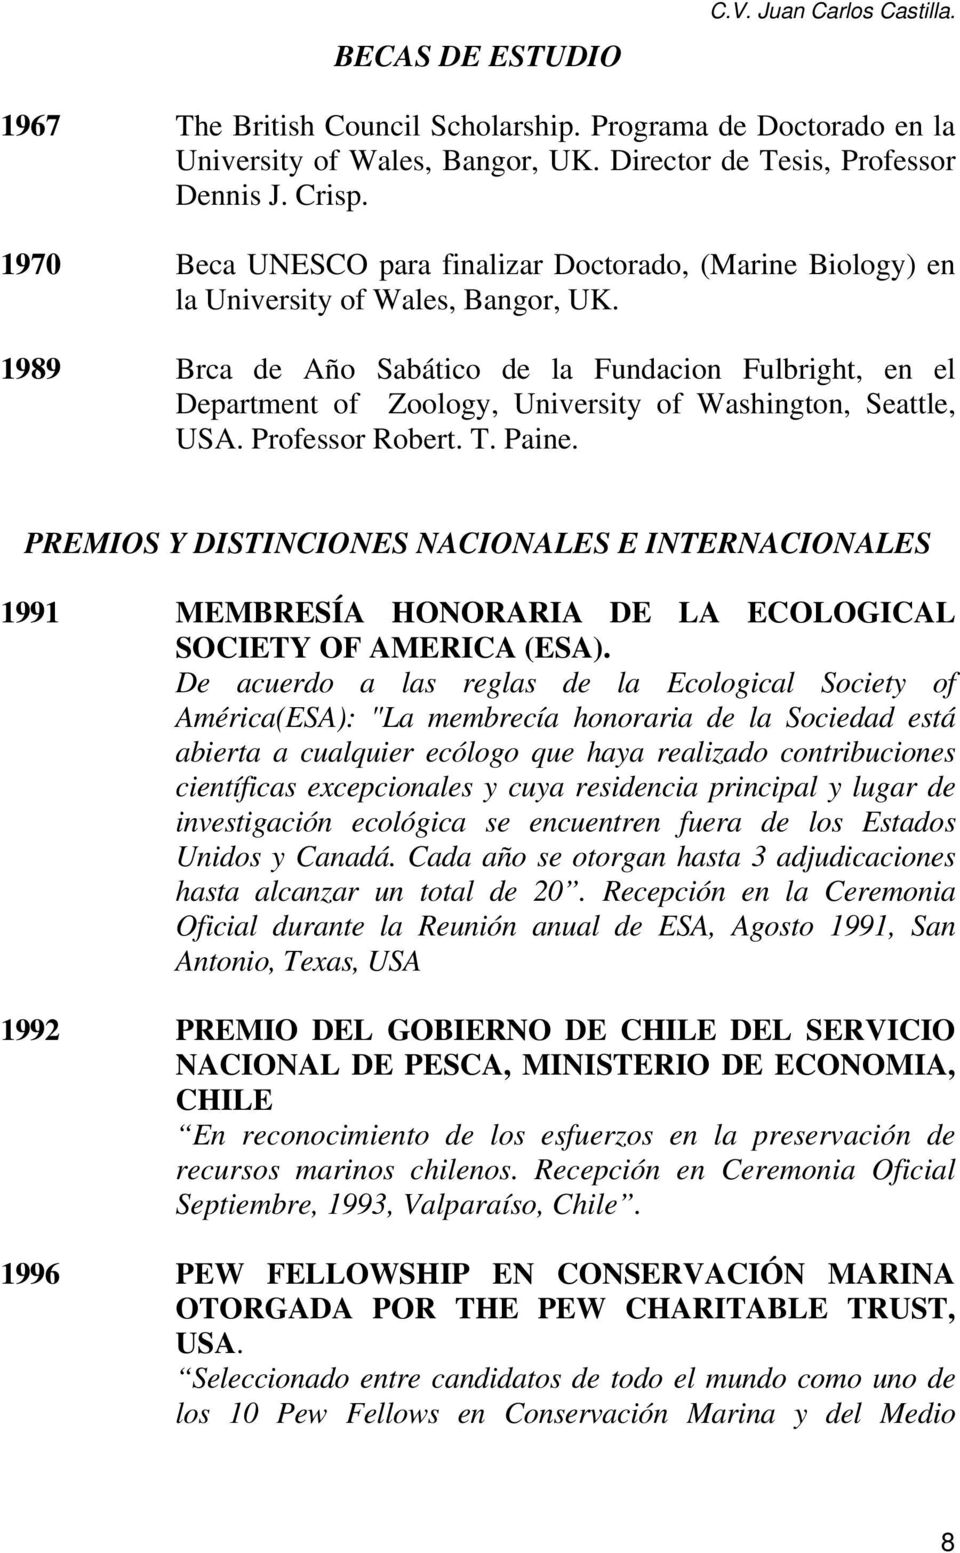 1989 Brca de Año Sabático de la Fundacion Fulbright, en el Department of Zoology, University of Washington, Seattle, USA. Professor Robert. T. Paine.